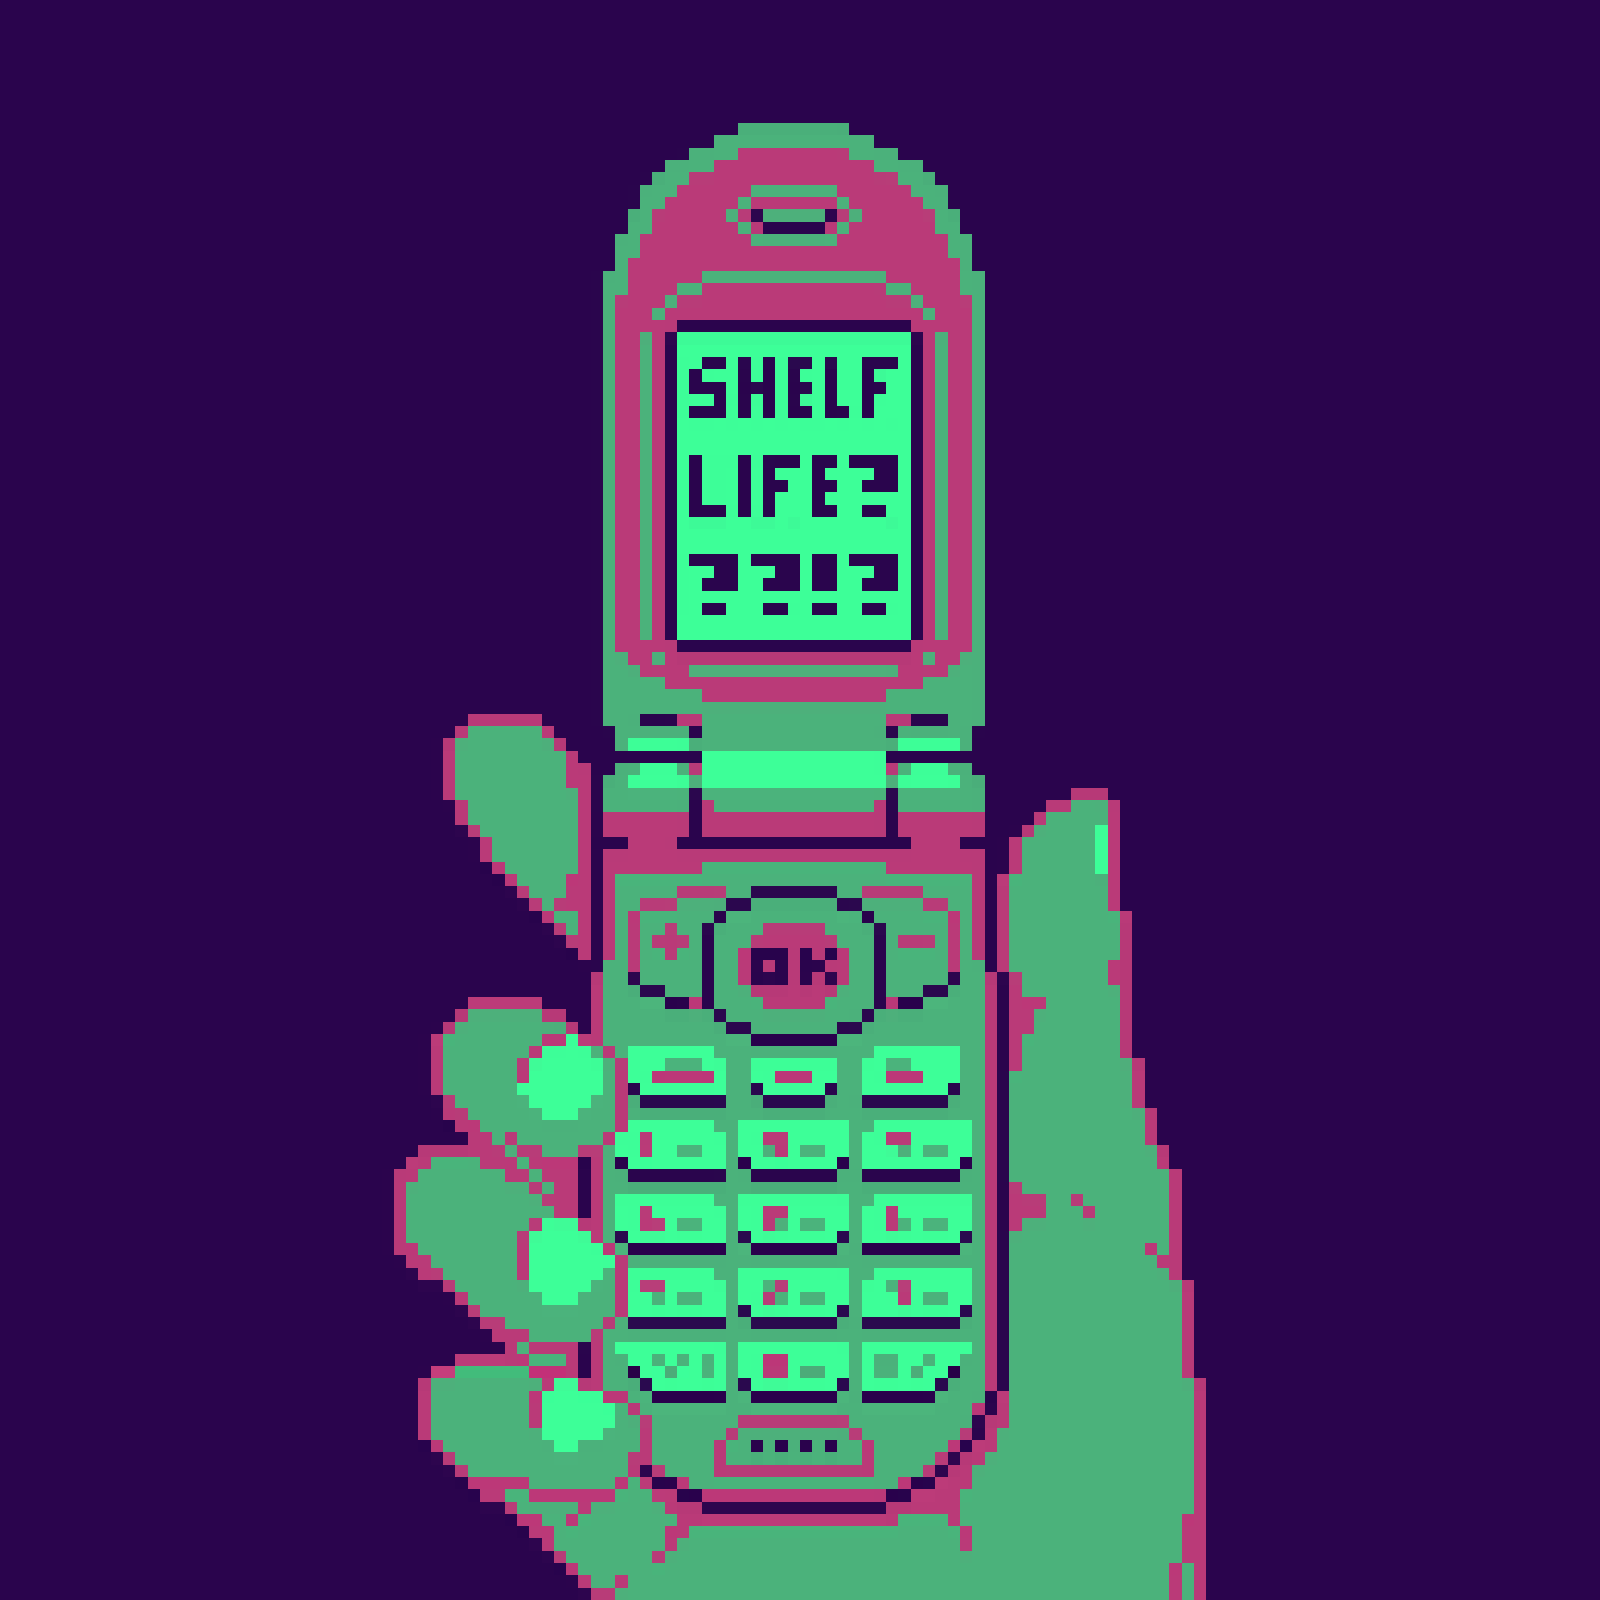 shelflife-phone.png